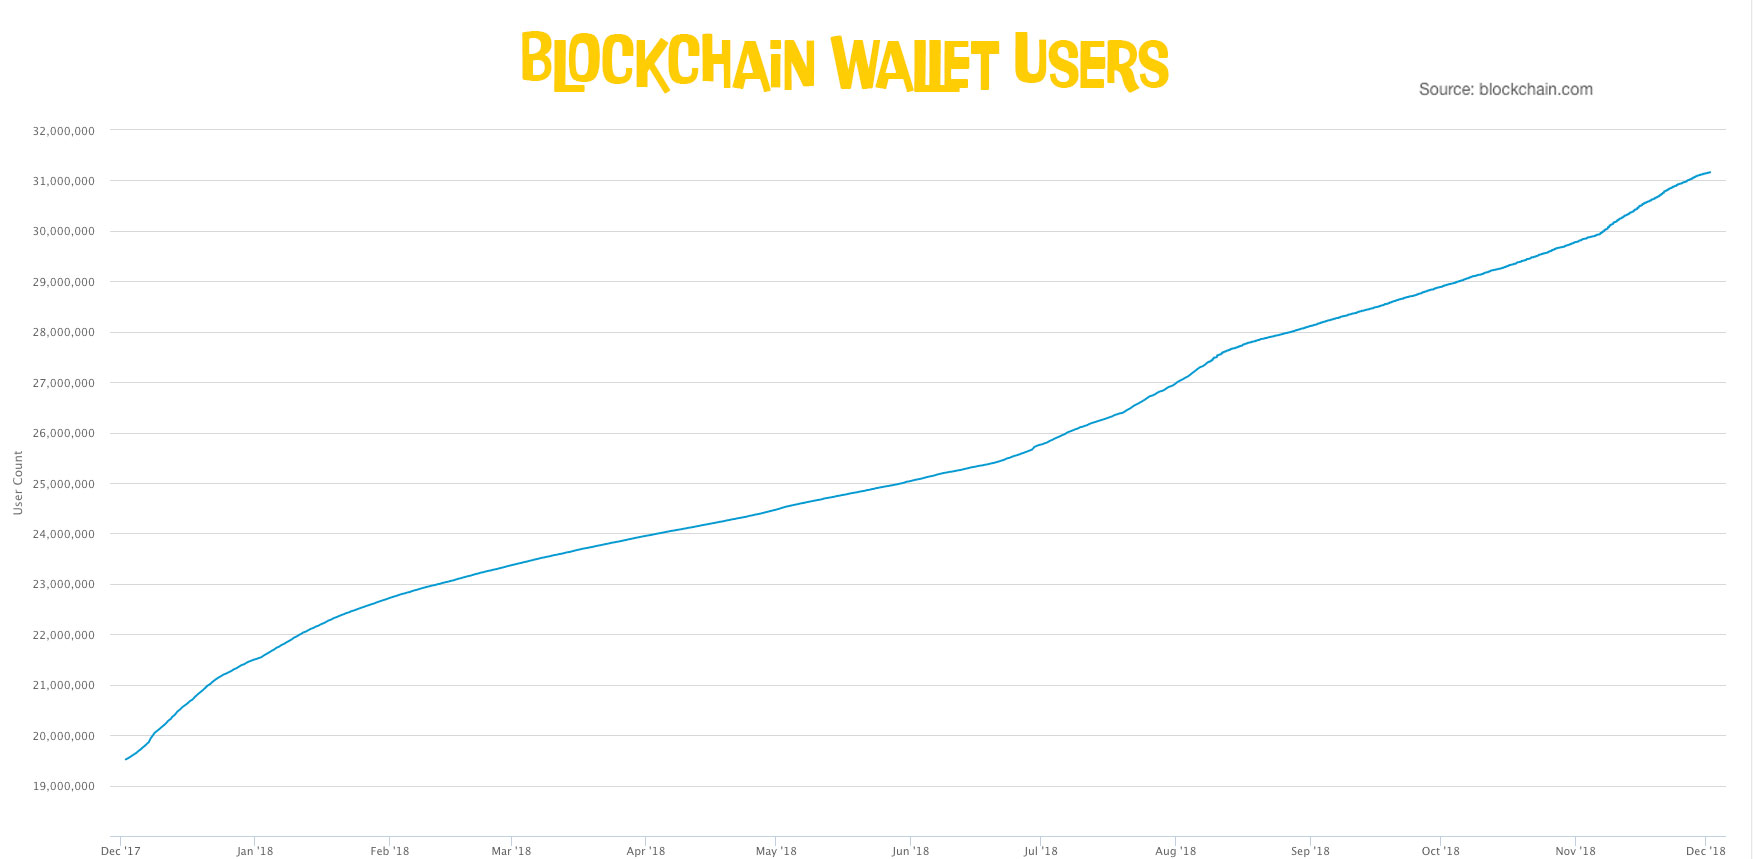 Blockchain Wallet Users